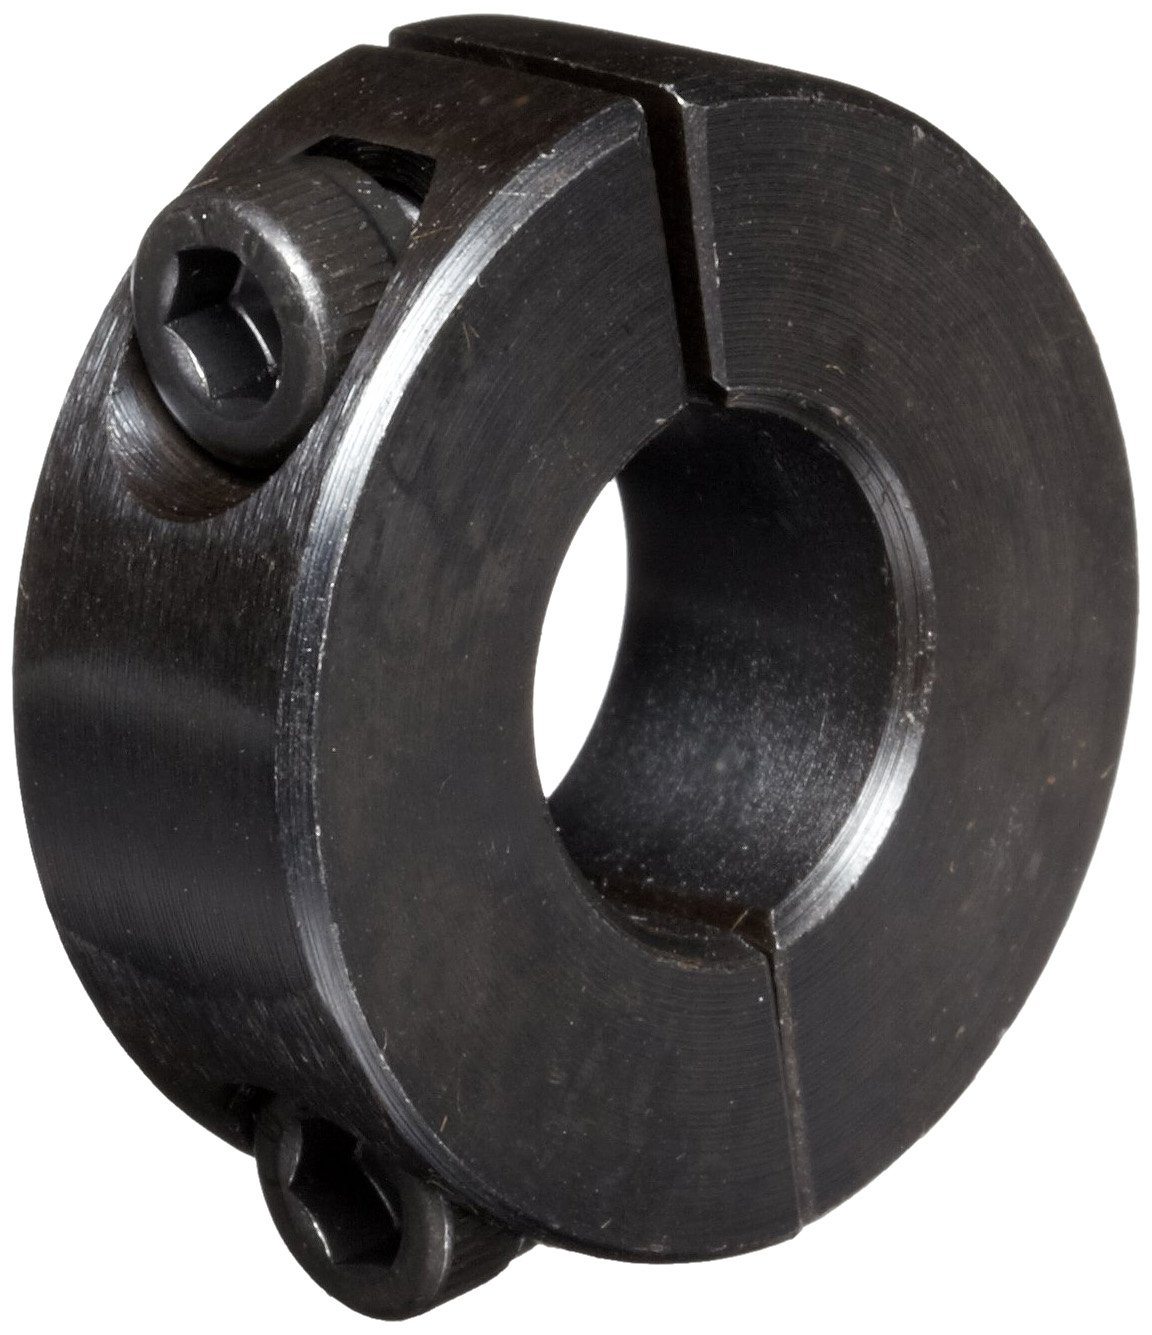 Black Oxide Plating Climax Metal 2C-050 Steel Two-Piece Clamping Collar 1-1//8 OD 1//2 Bore Size With 8-32 x 1//2 Set Screw